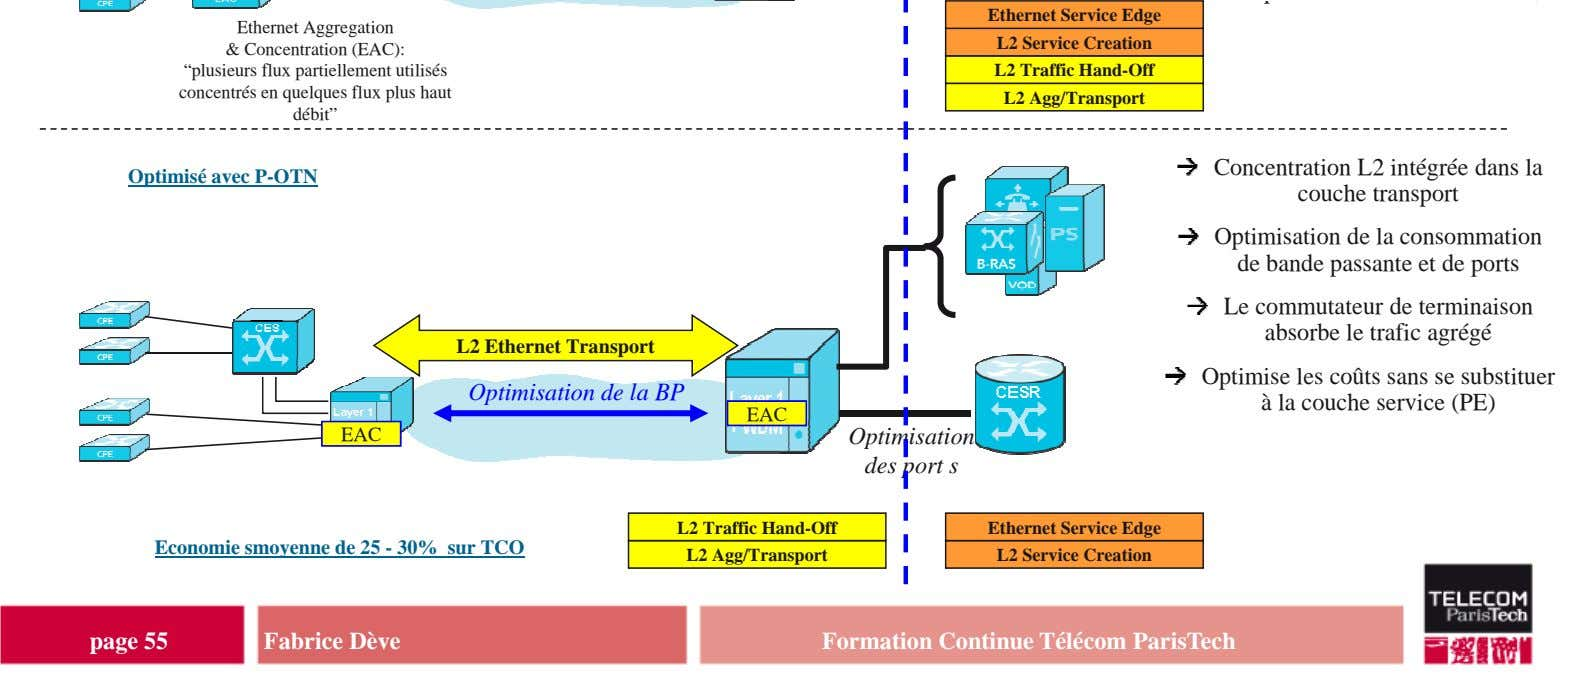 "Ethernet Service Edge Ethernet Aggregation & Concentration (EAC): L2 Service Creation ""plusieurs flux"